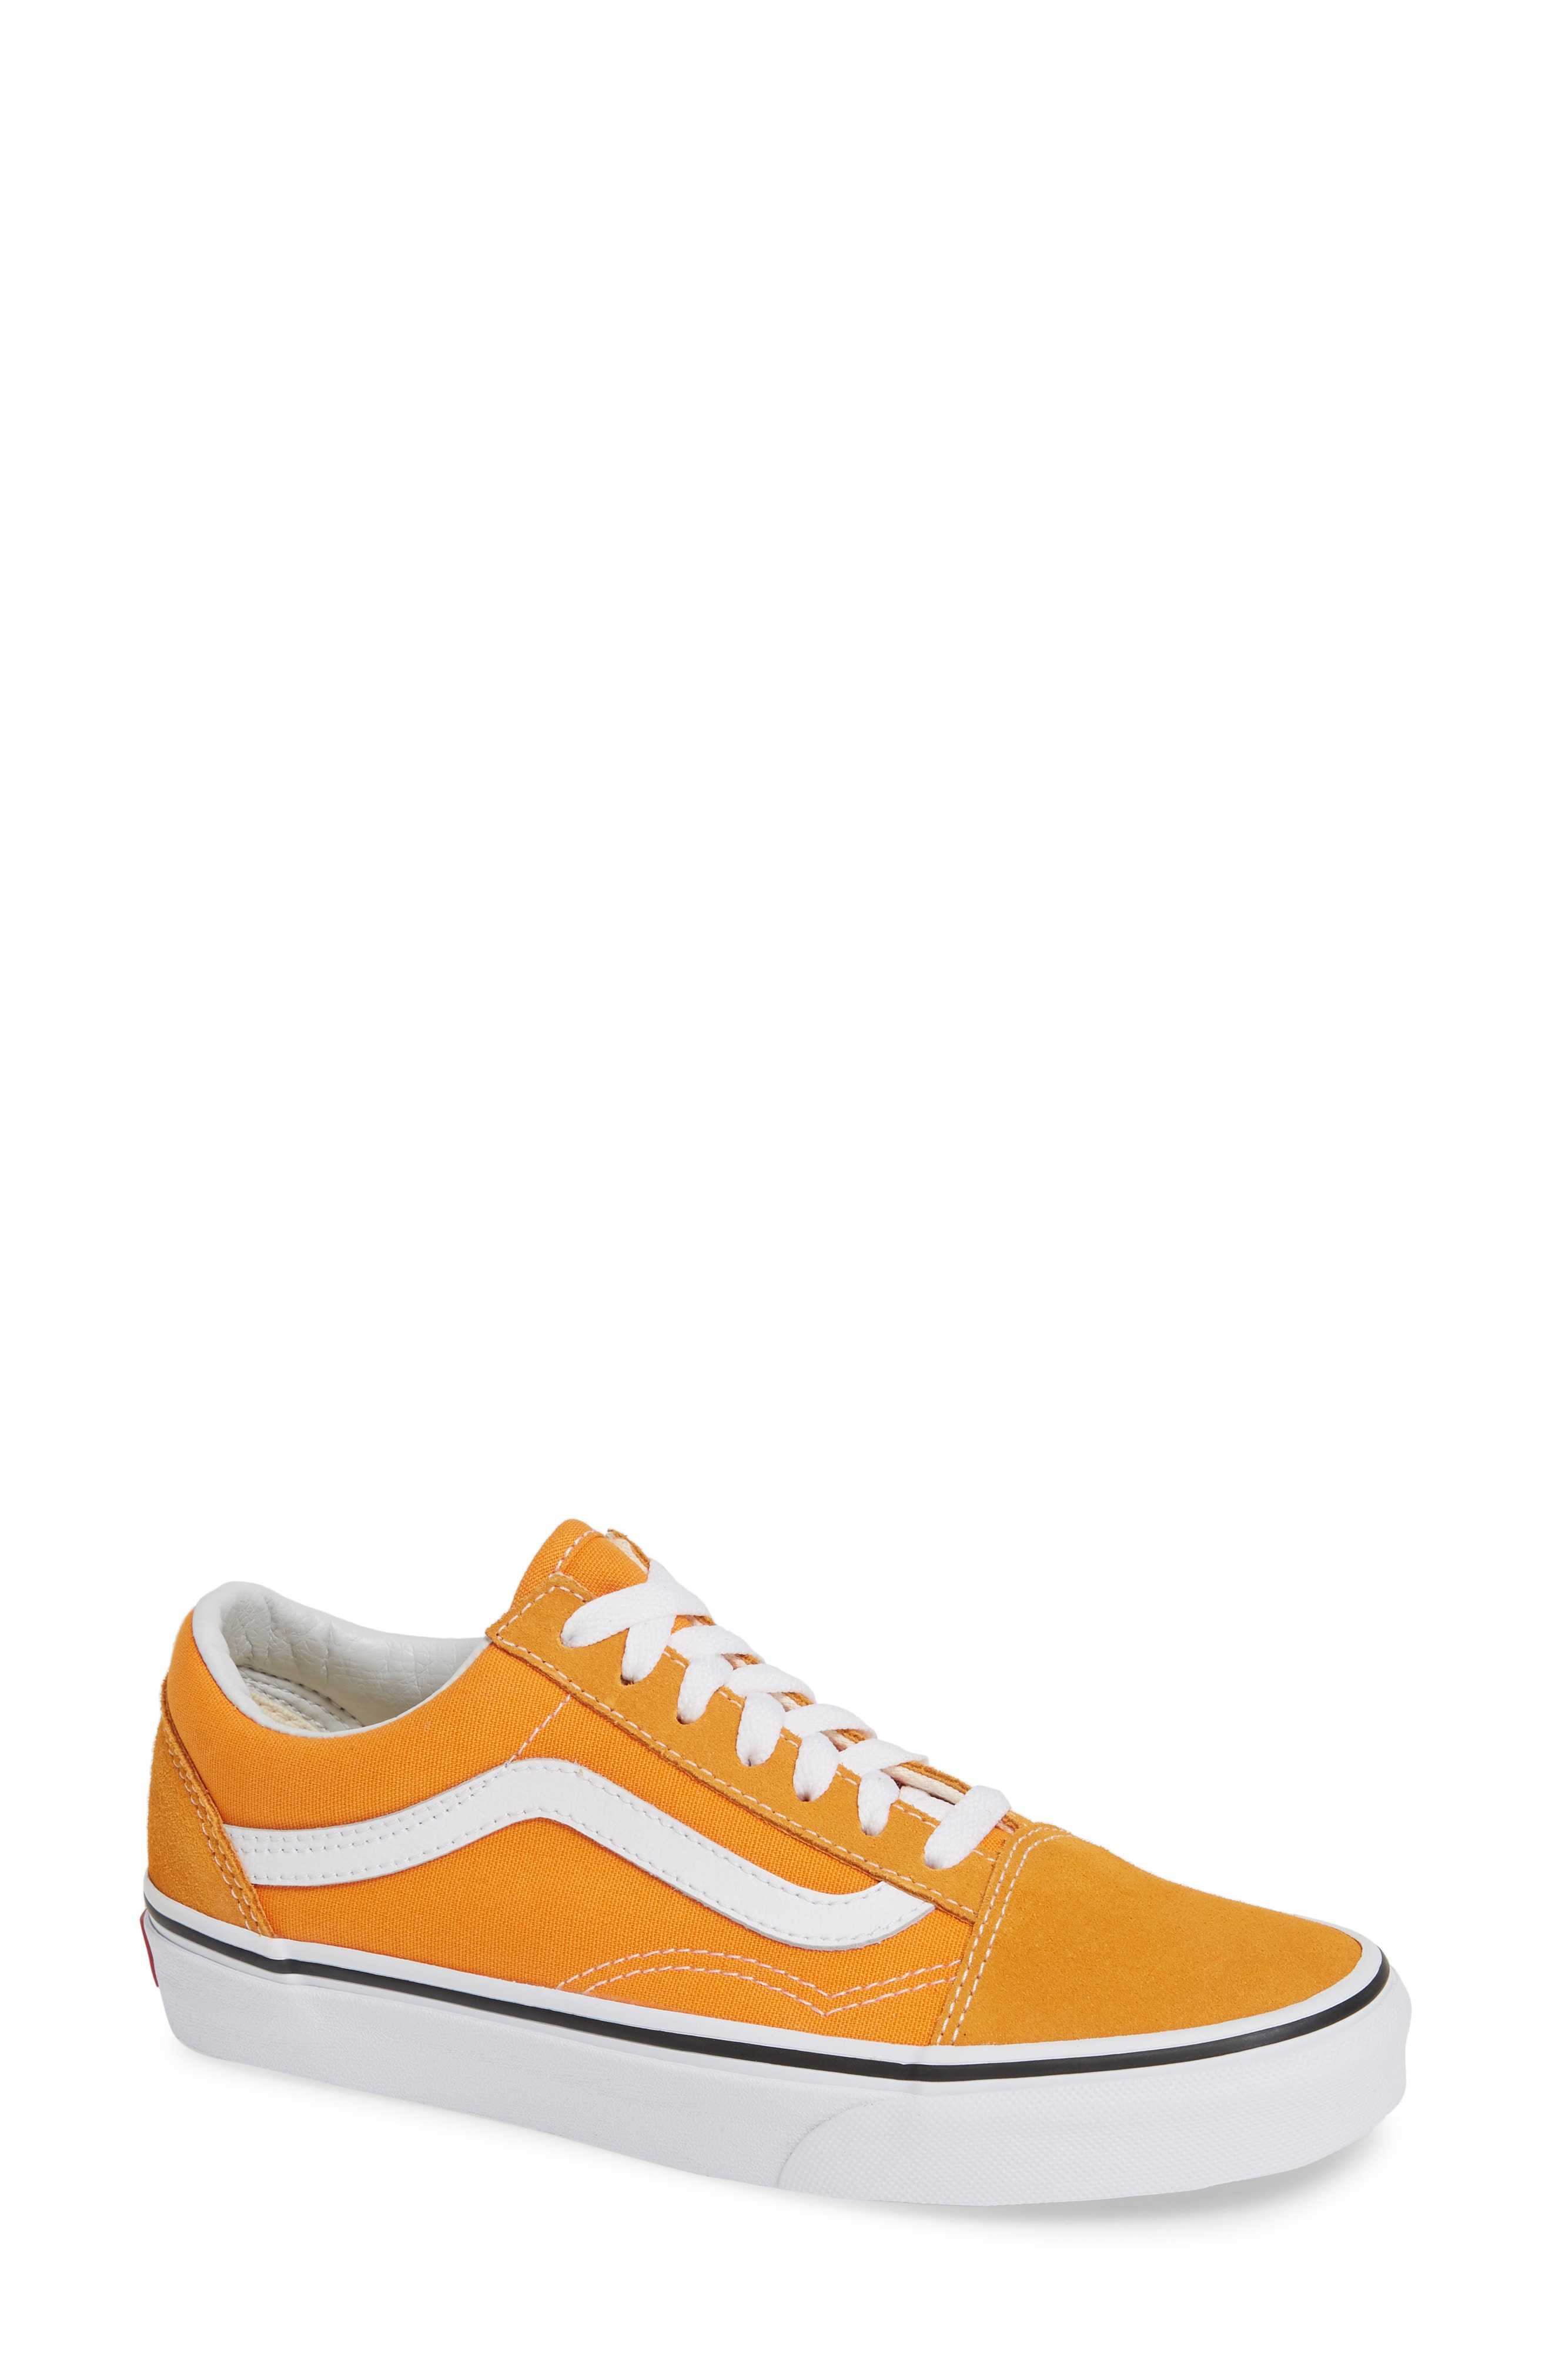 Women's Orange Shoes | Nordstrom